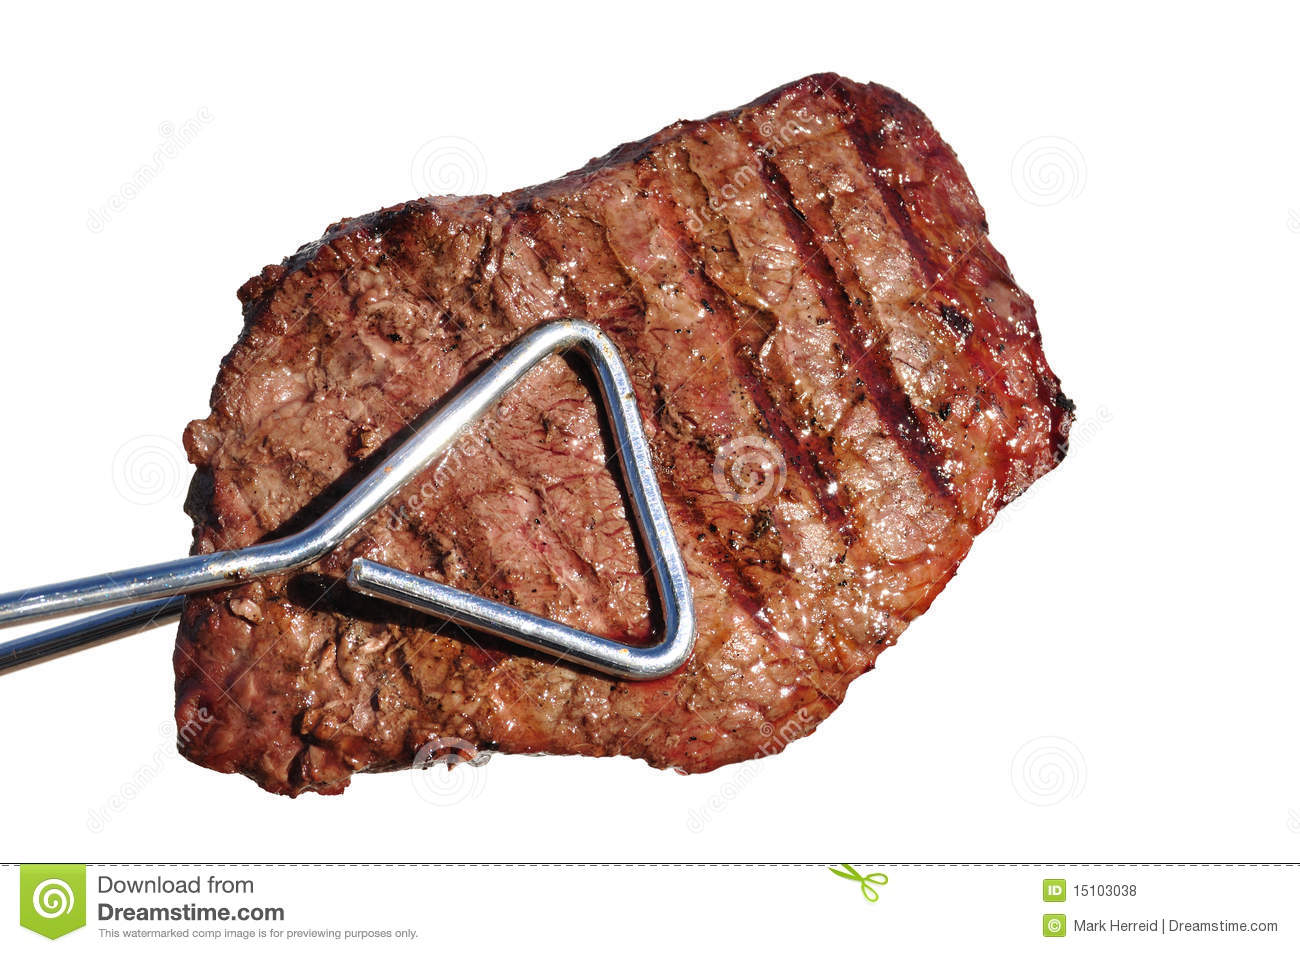 Tongs Holding Grilled Beef Loin Top Sirloin Steak Royalty ...